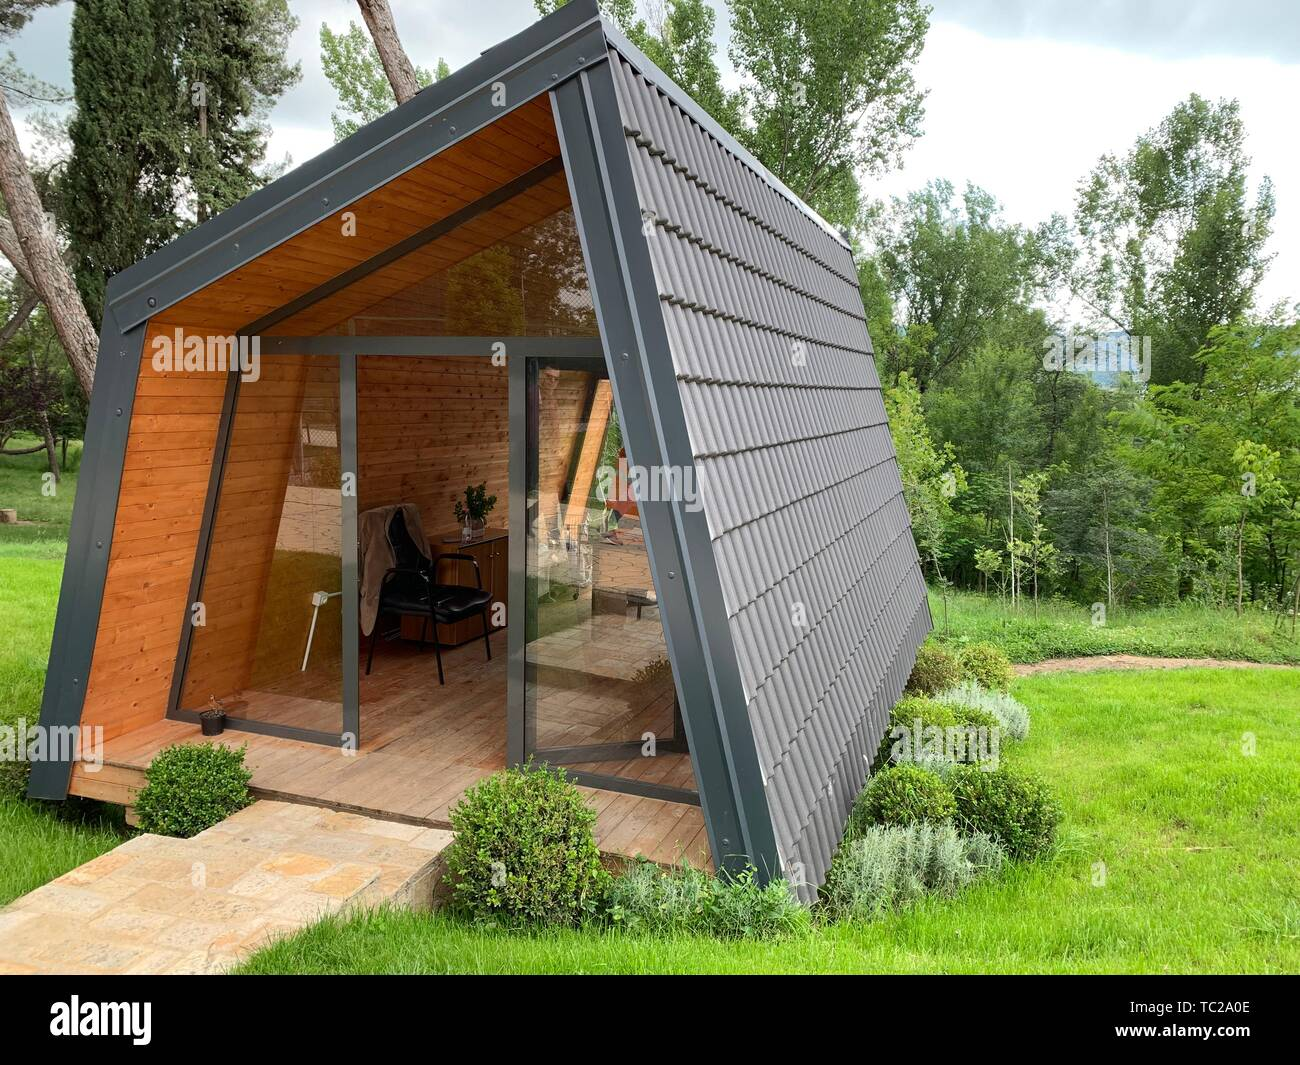 Small Wooden Cabin House Exterior Design Stock Photo Alamy